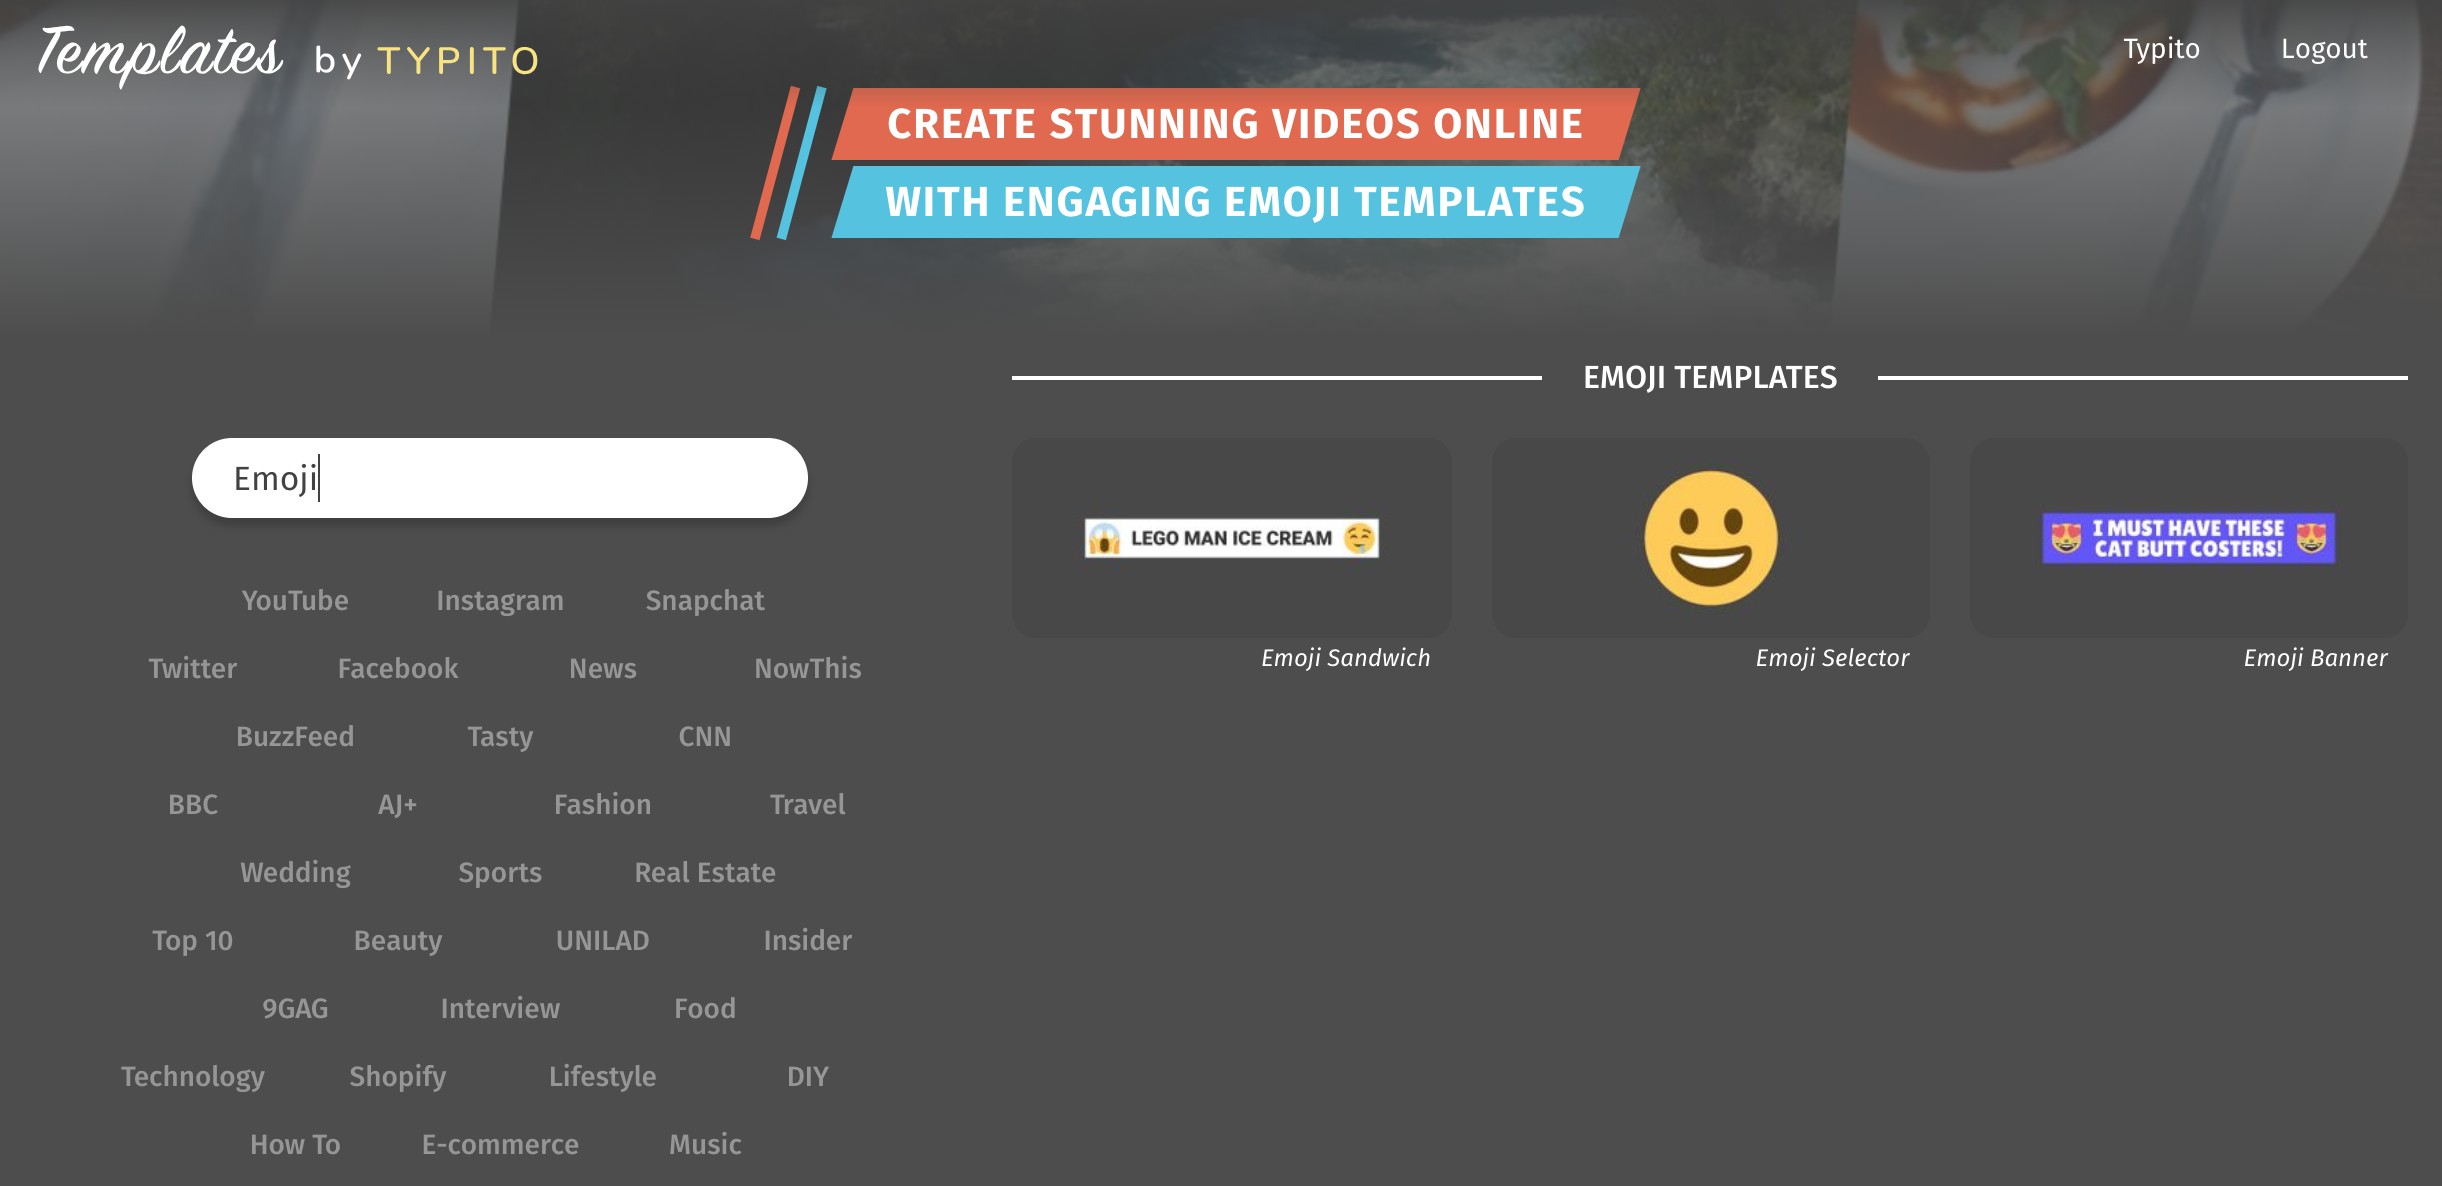 Emoji templates on Typito